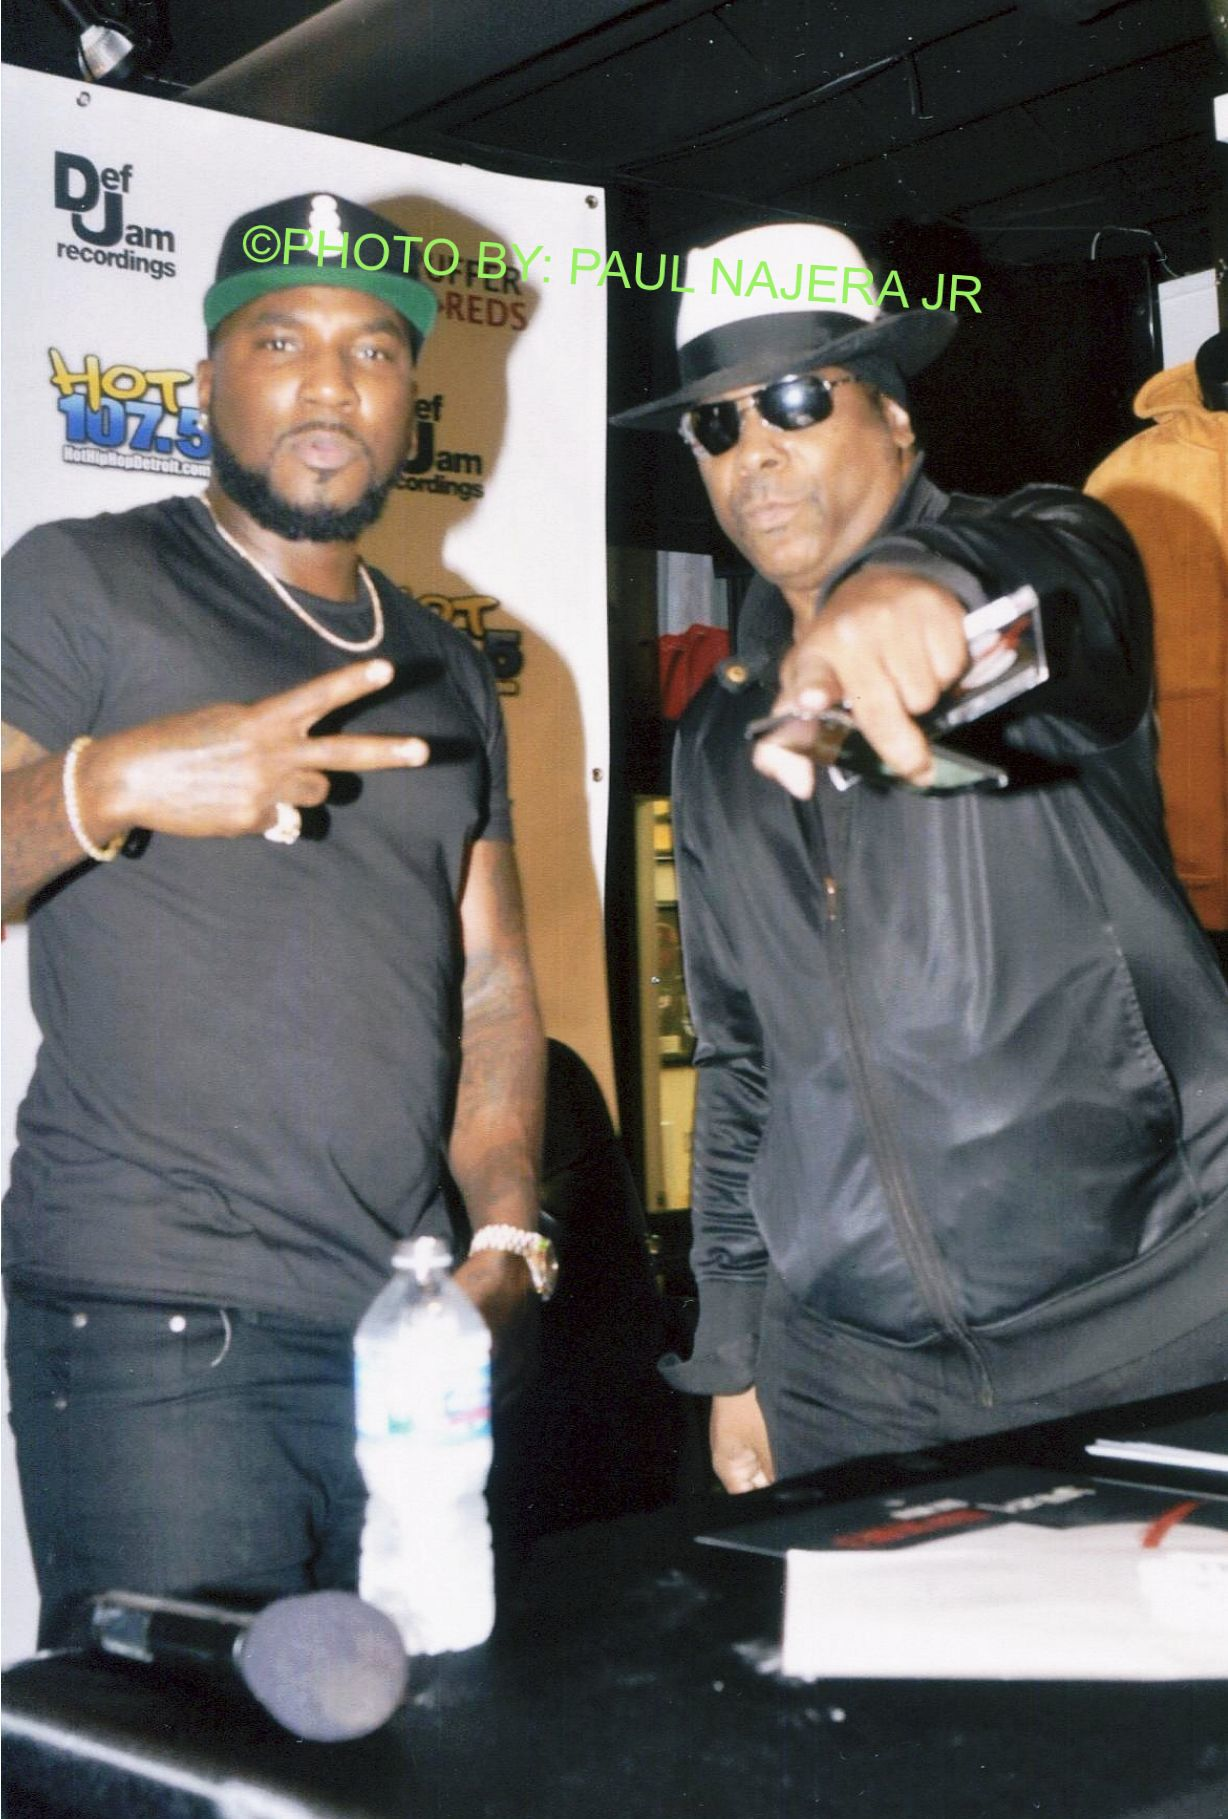 Young_Jeezy_taken_picture_with_fan__2_.jpg